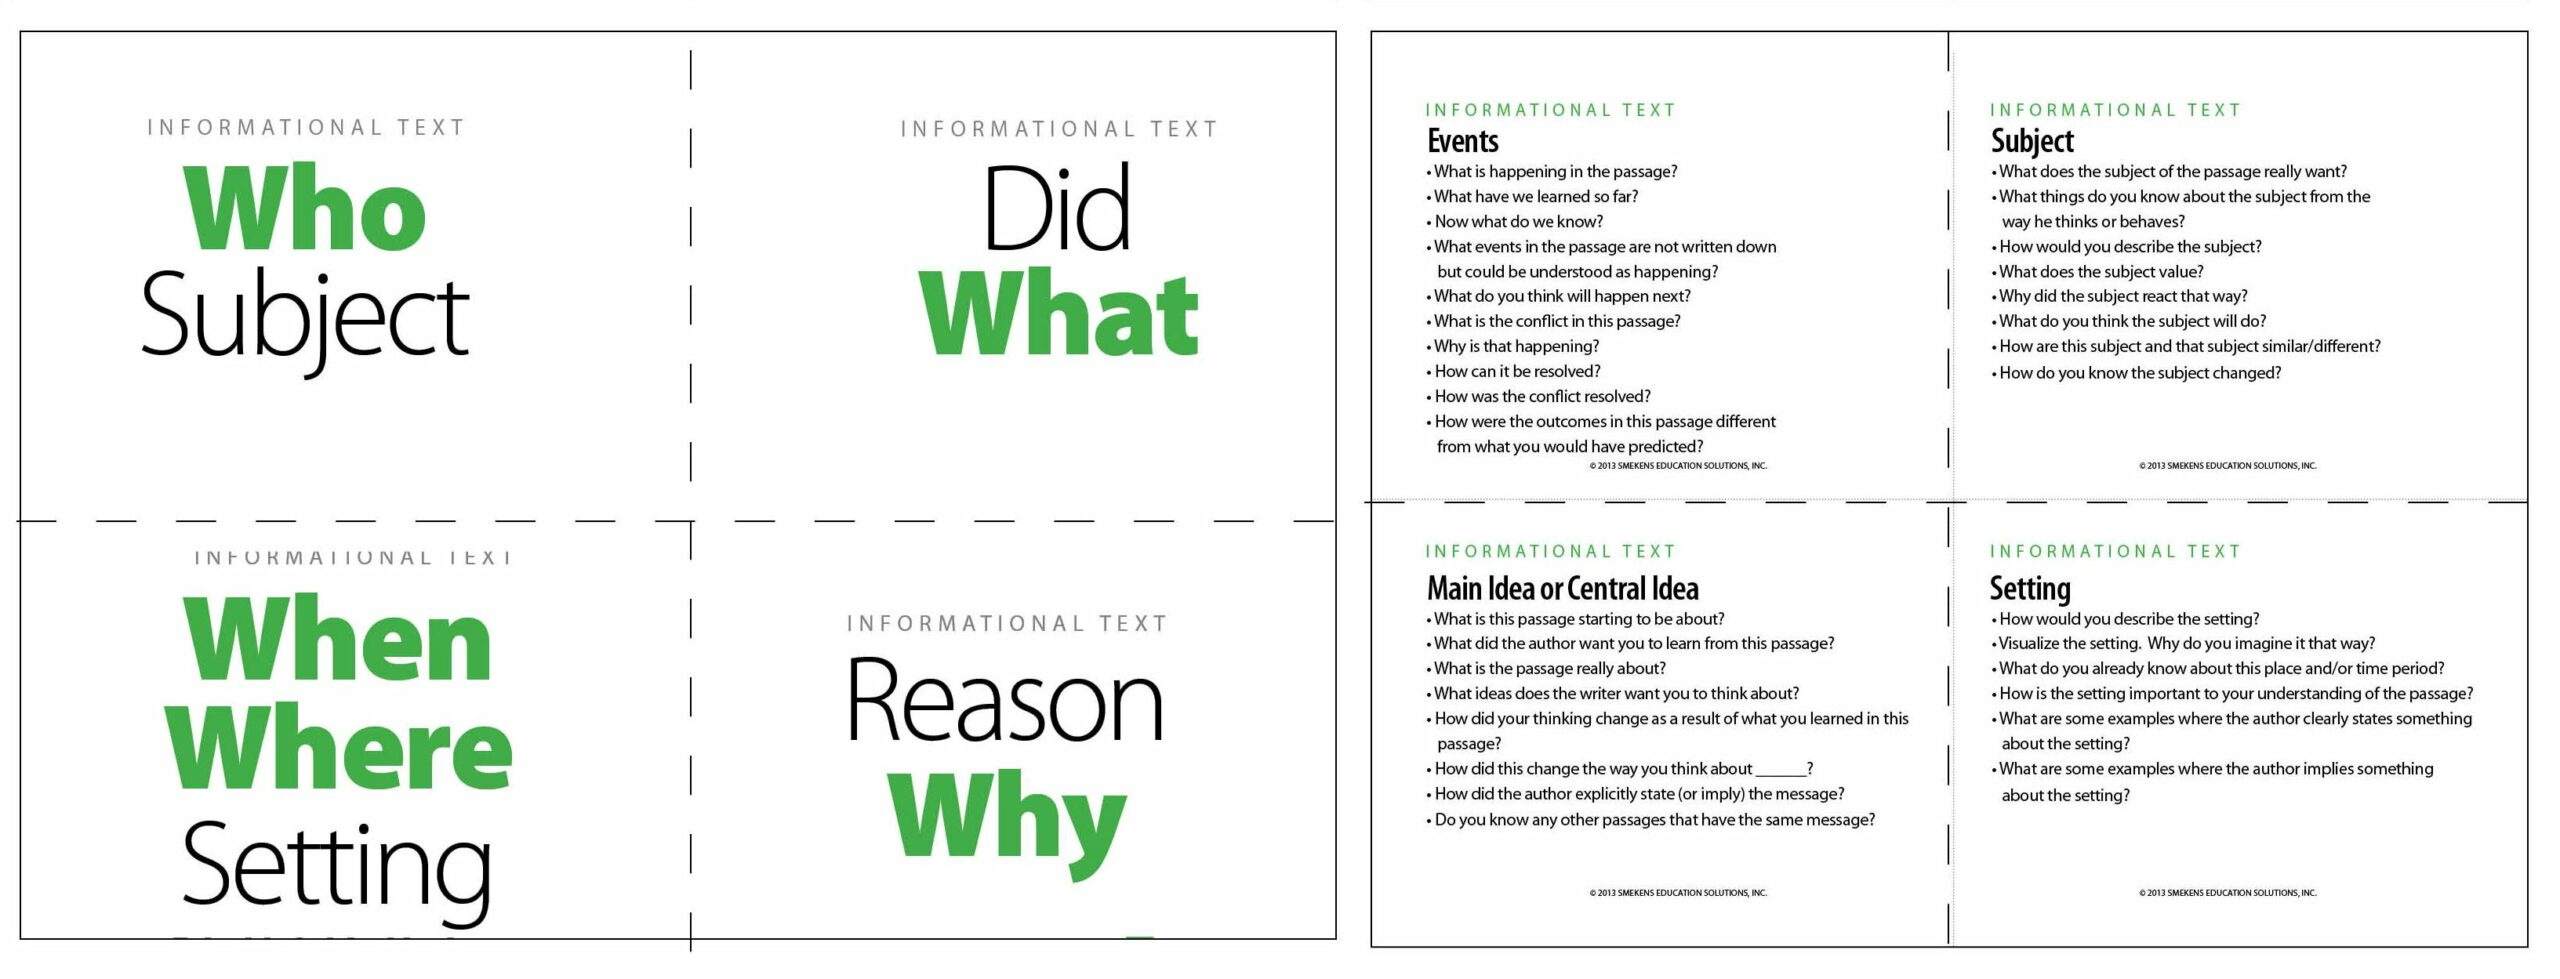 5 Ws Question Cards for Informational Text